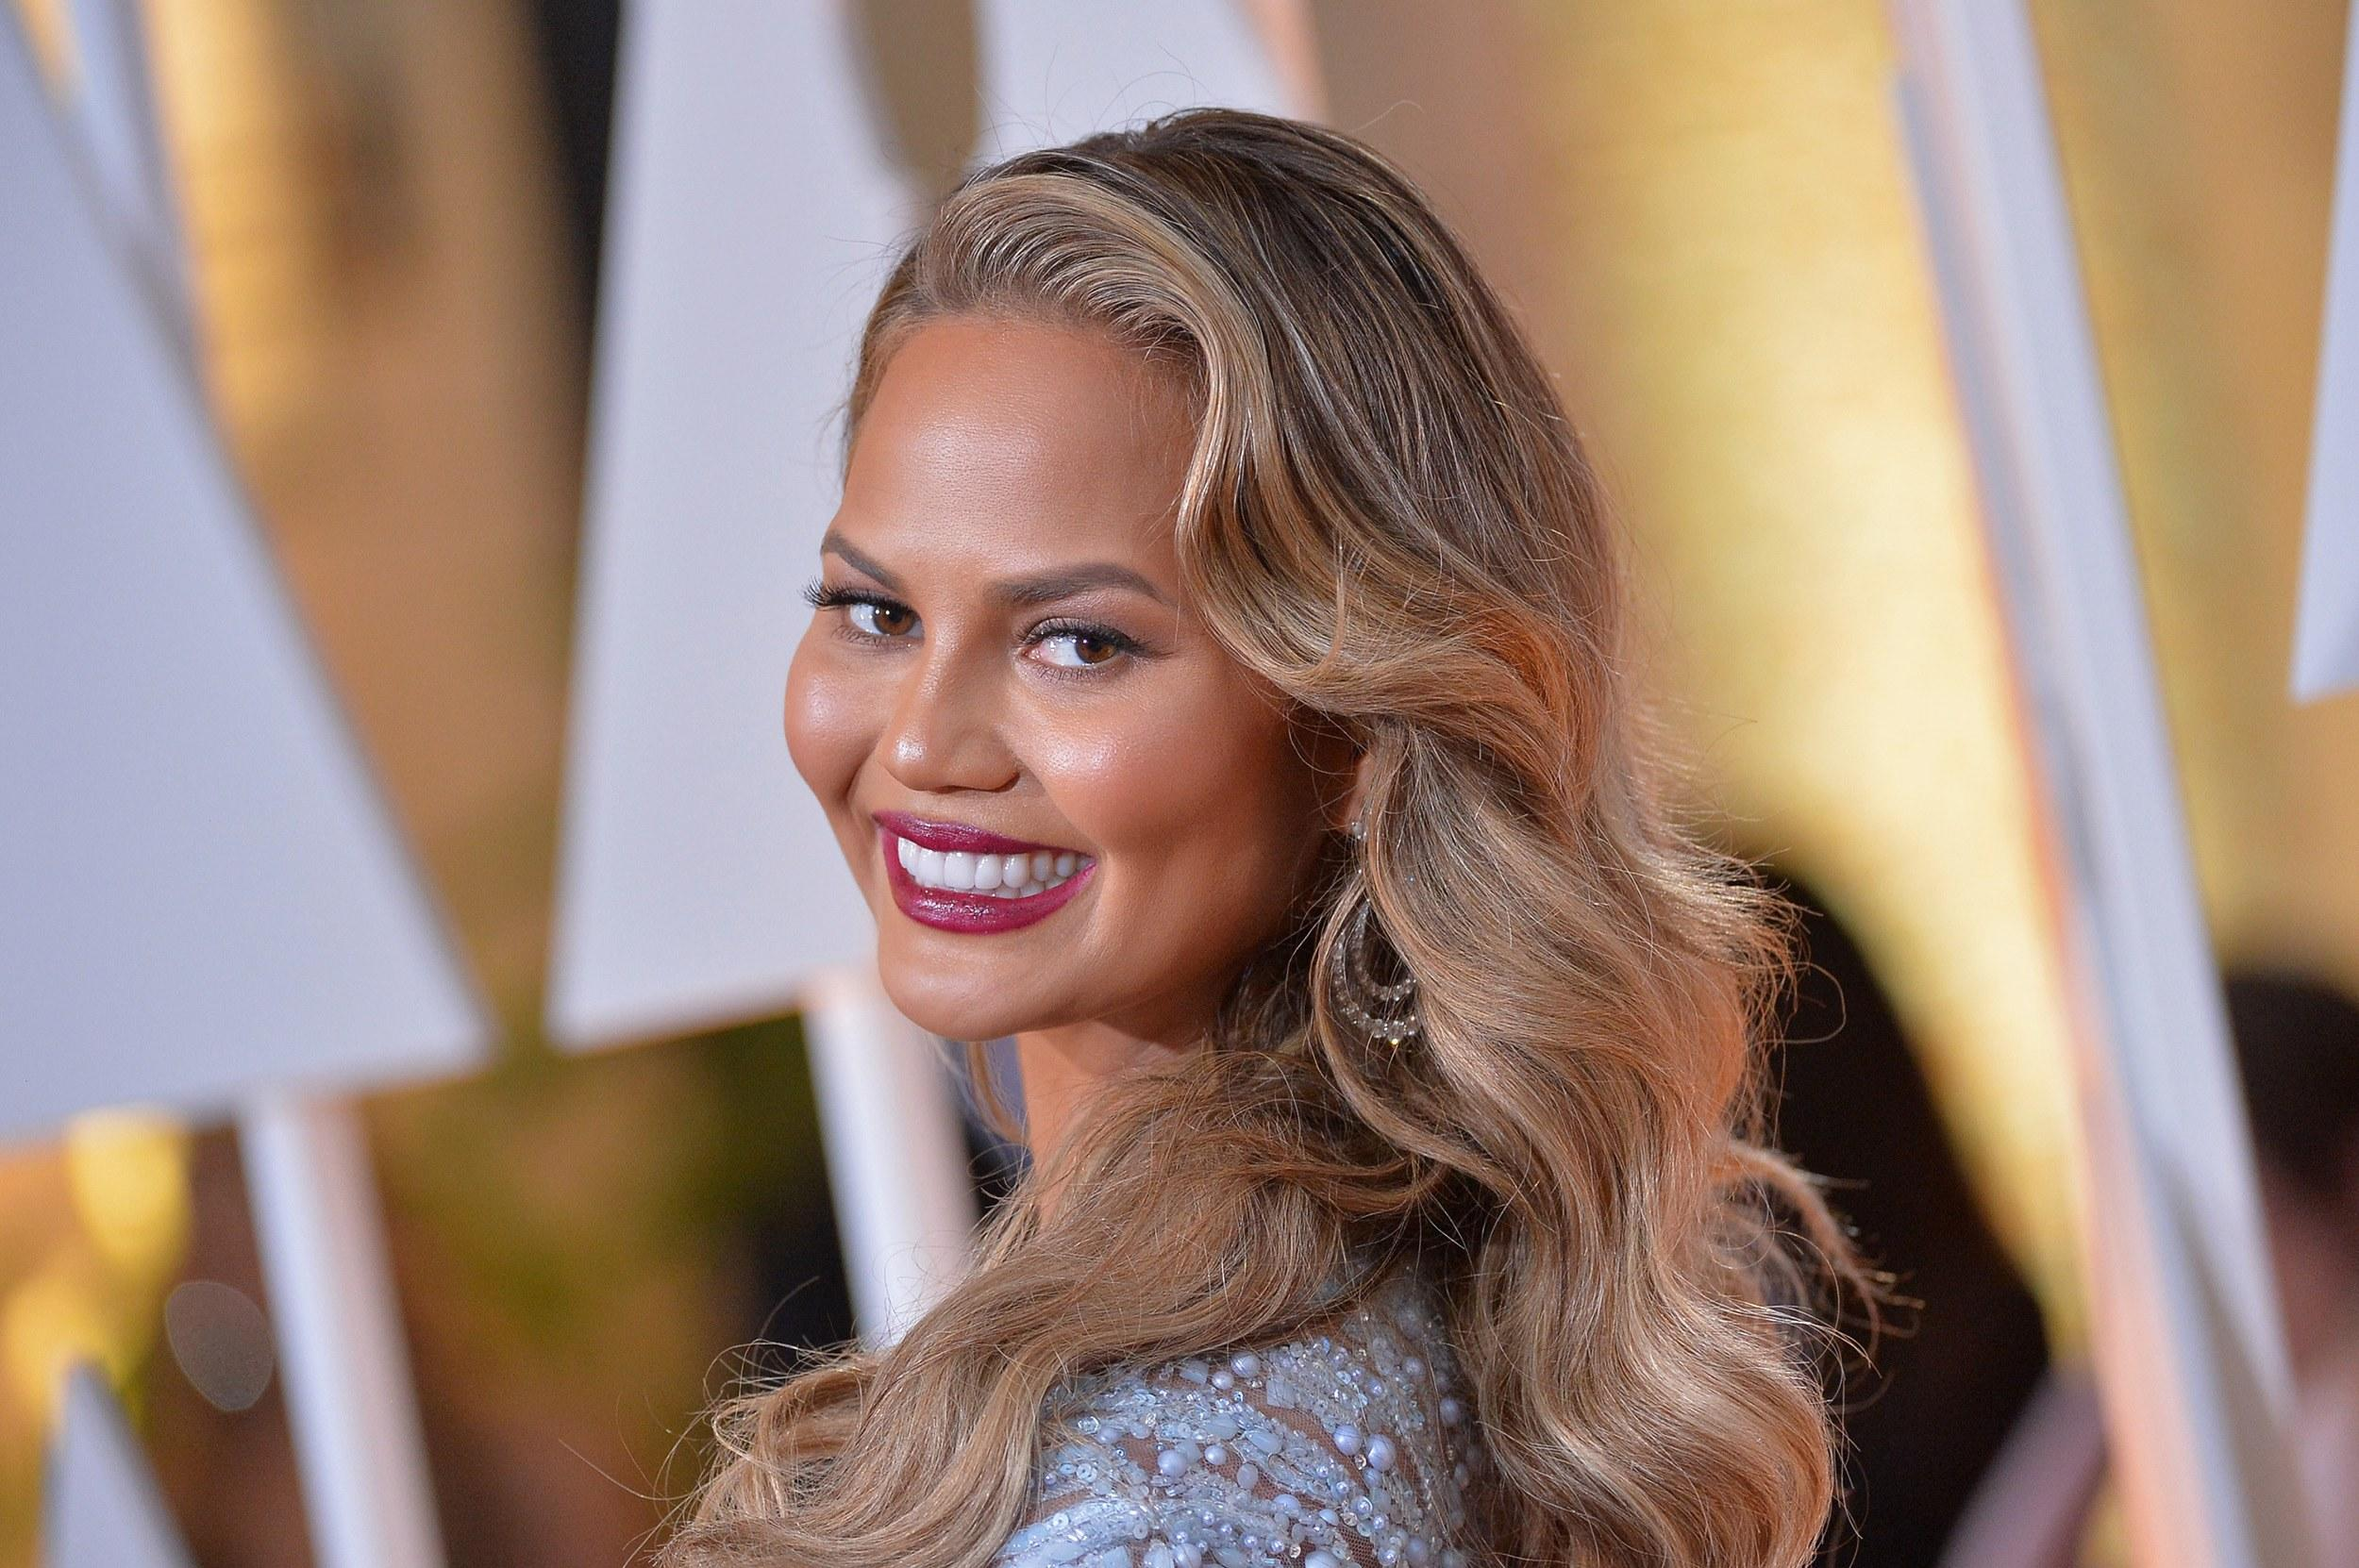 Watch Chrissy Teigen Kindly Fixed Ivanka Trumps Tweet for Her video